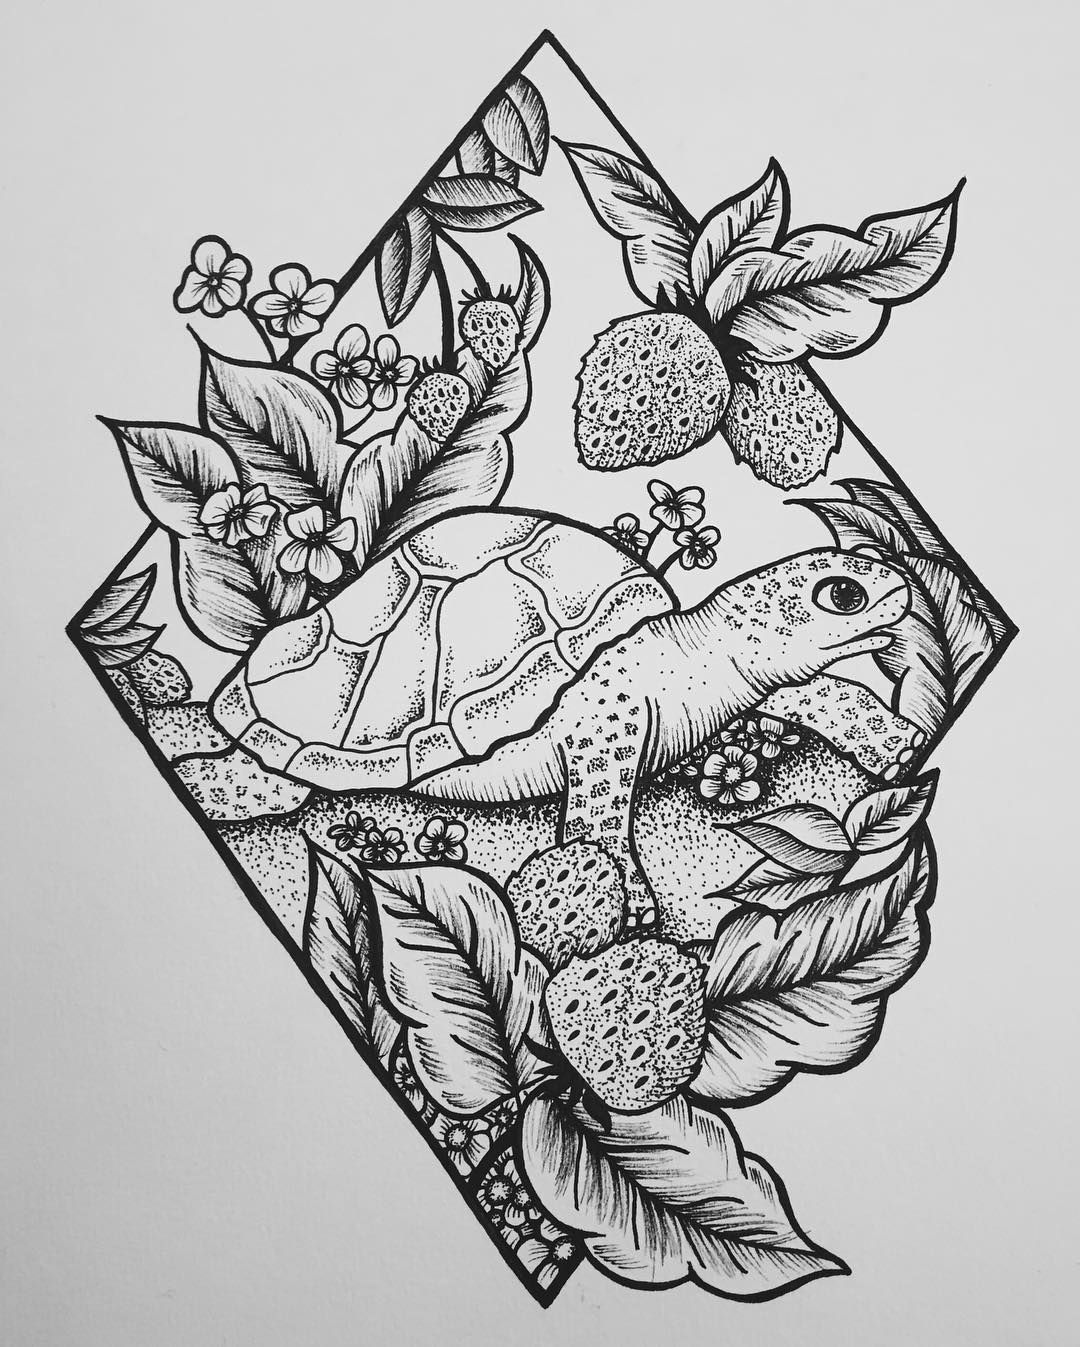 Turtle Illustration Tattoo Design With Images